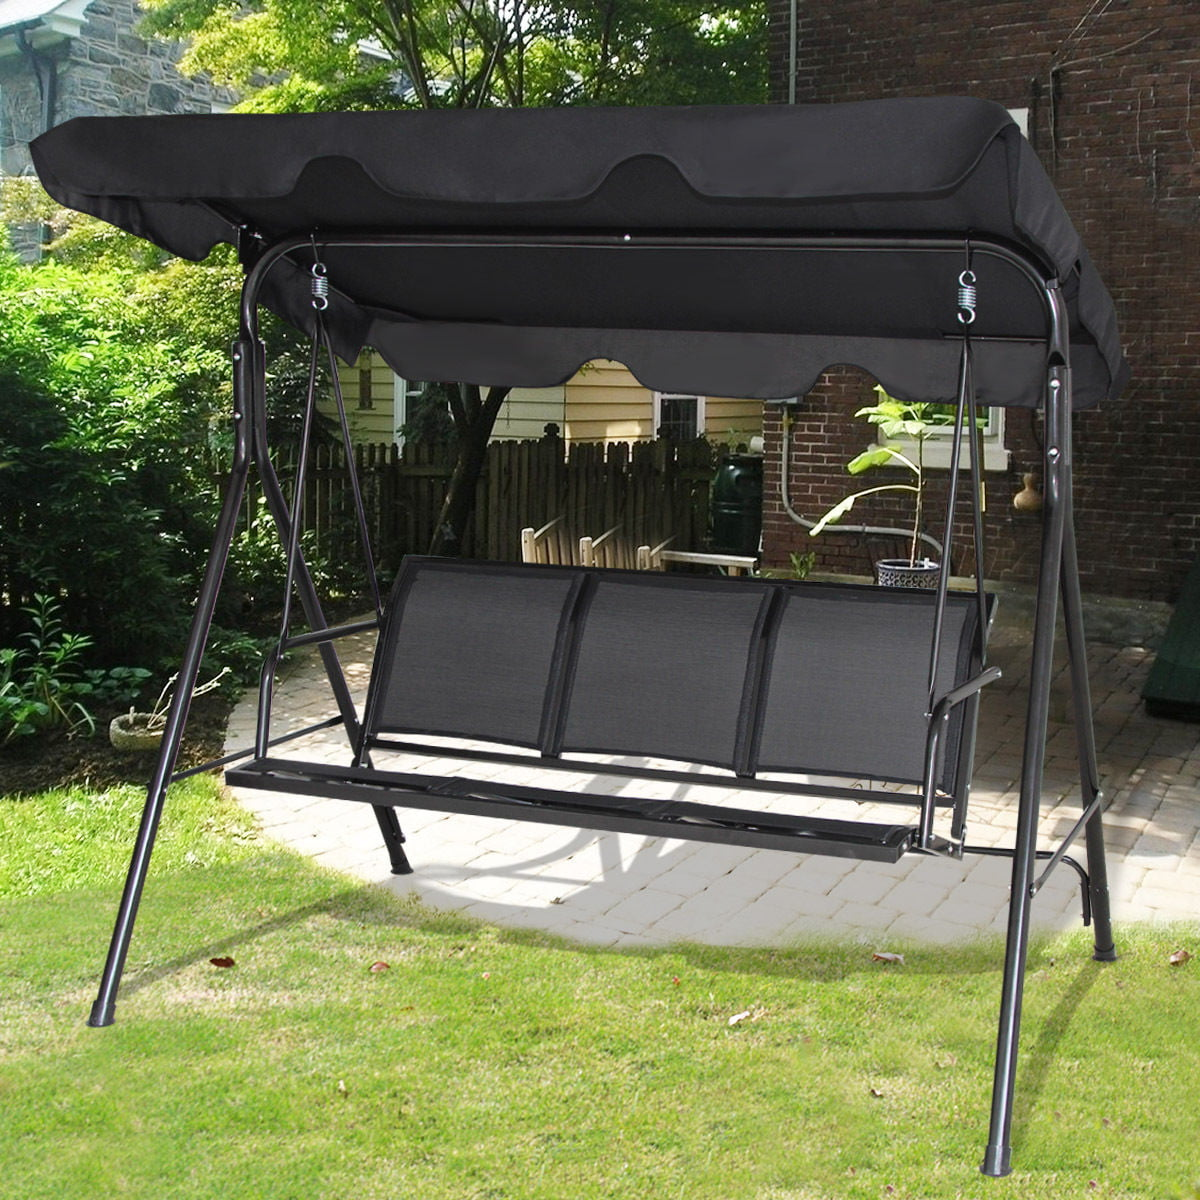 Gymax Black Outdoor Swing Canopy Patio Swing Chair 3 ...